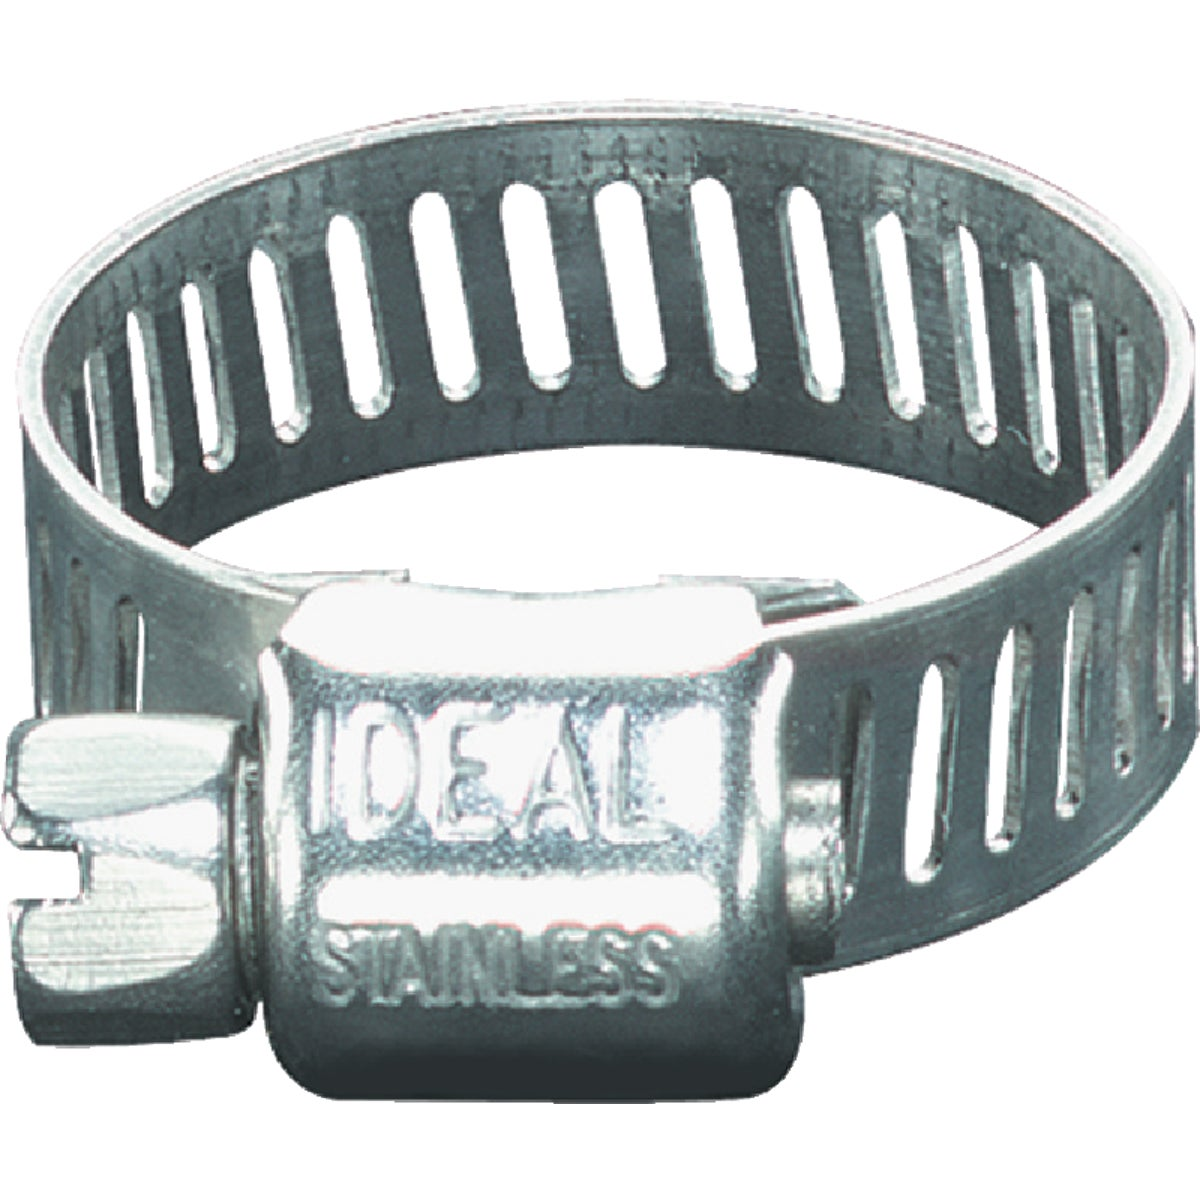 Ideal Corp. 5/16-7/8 CLAMP 6206053